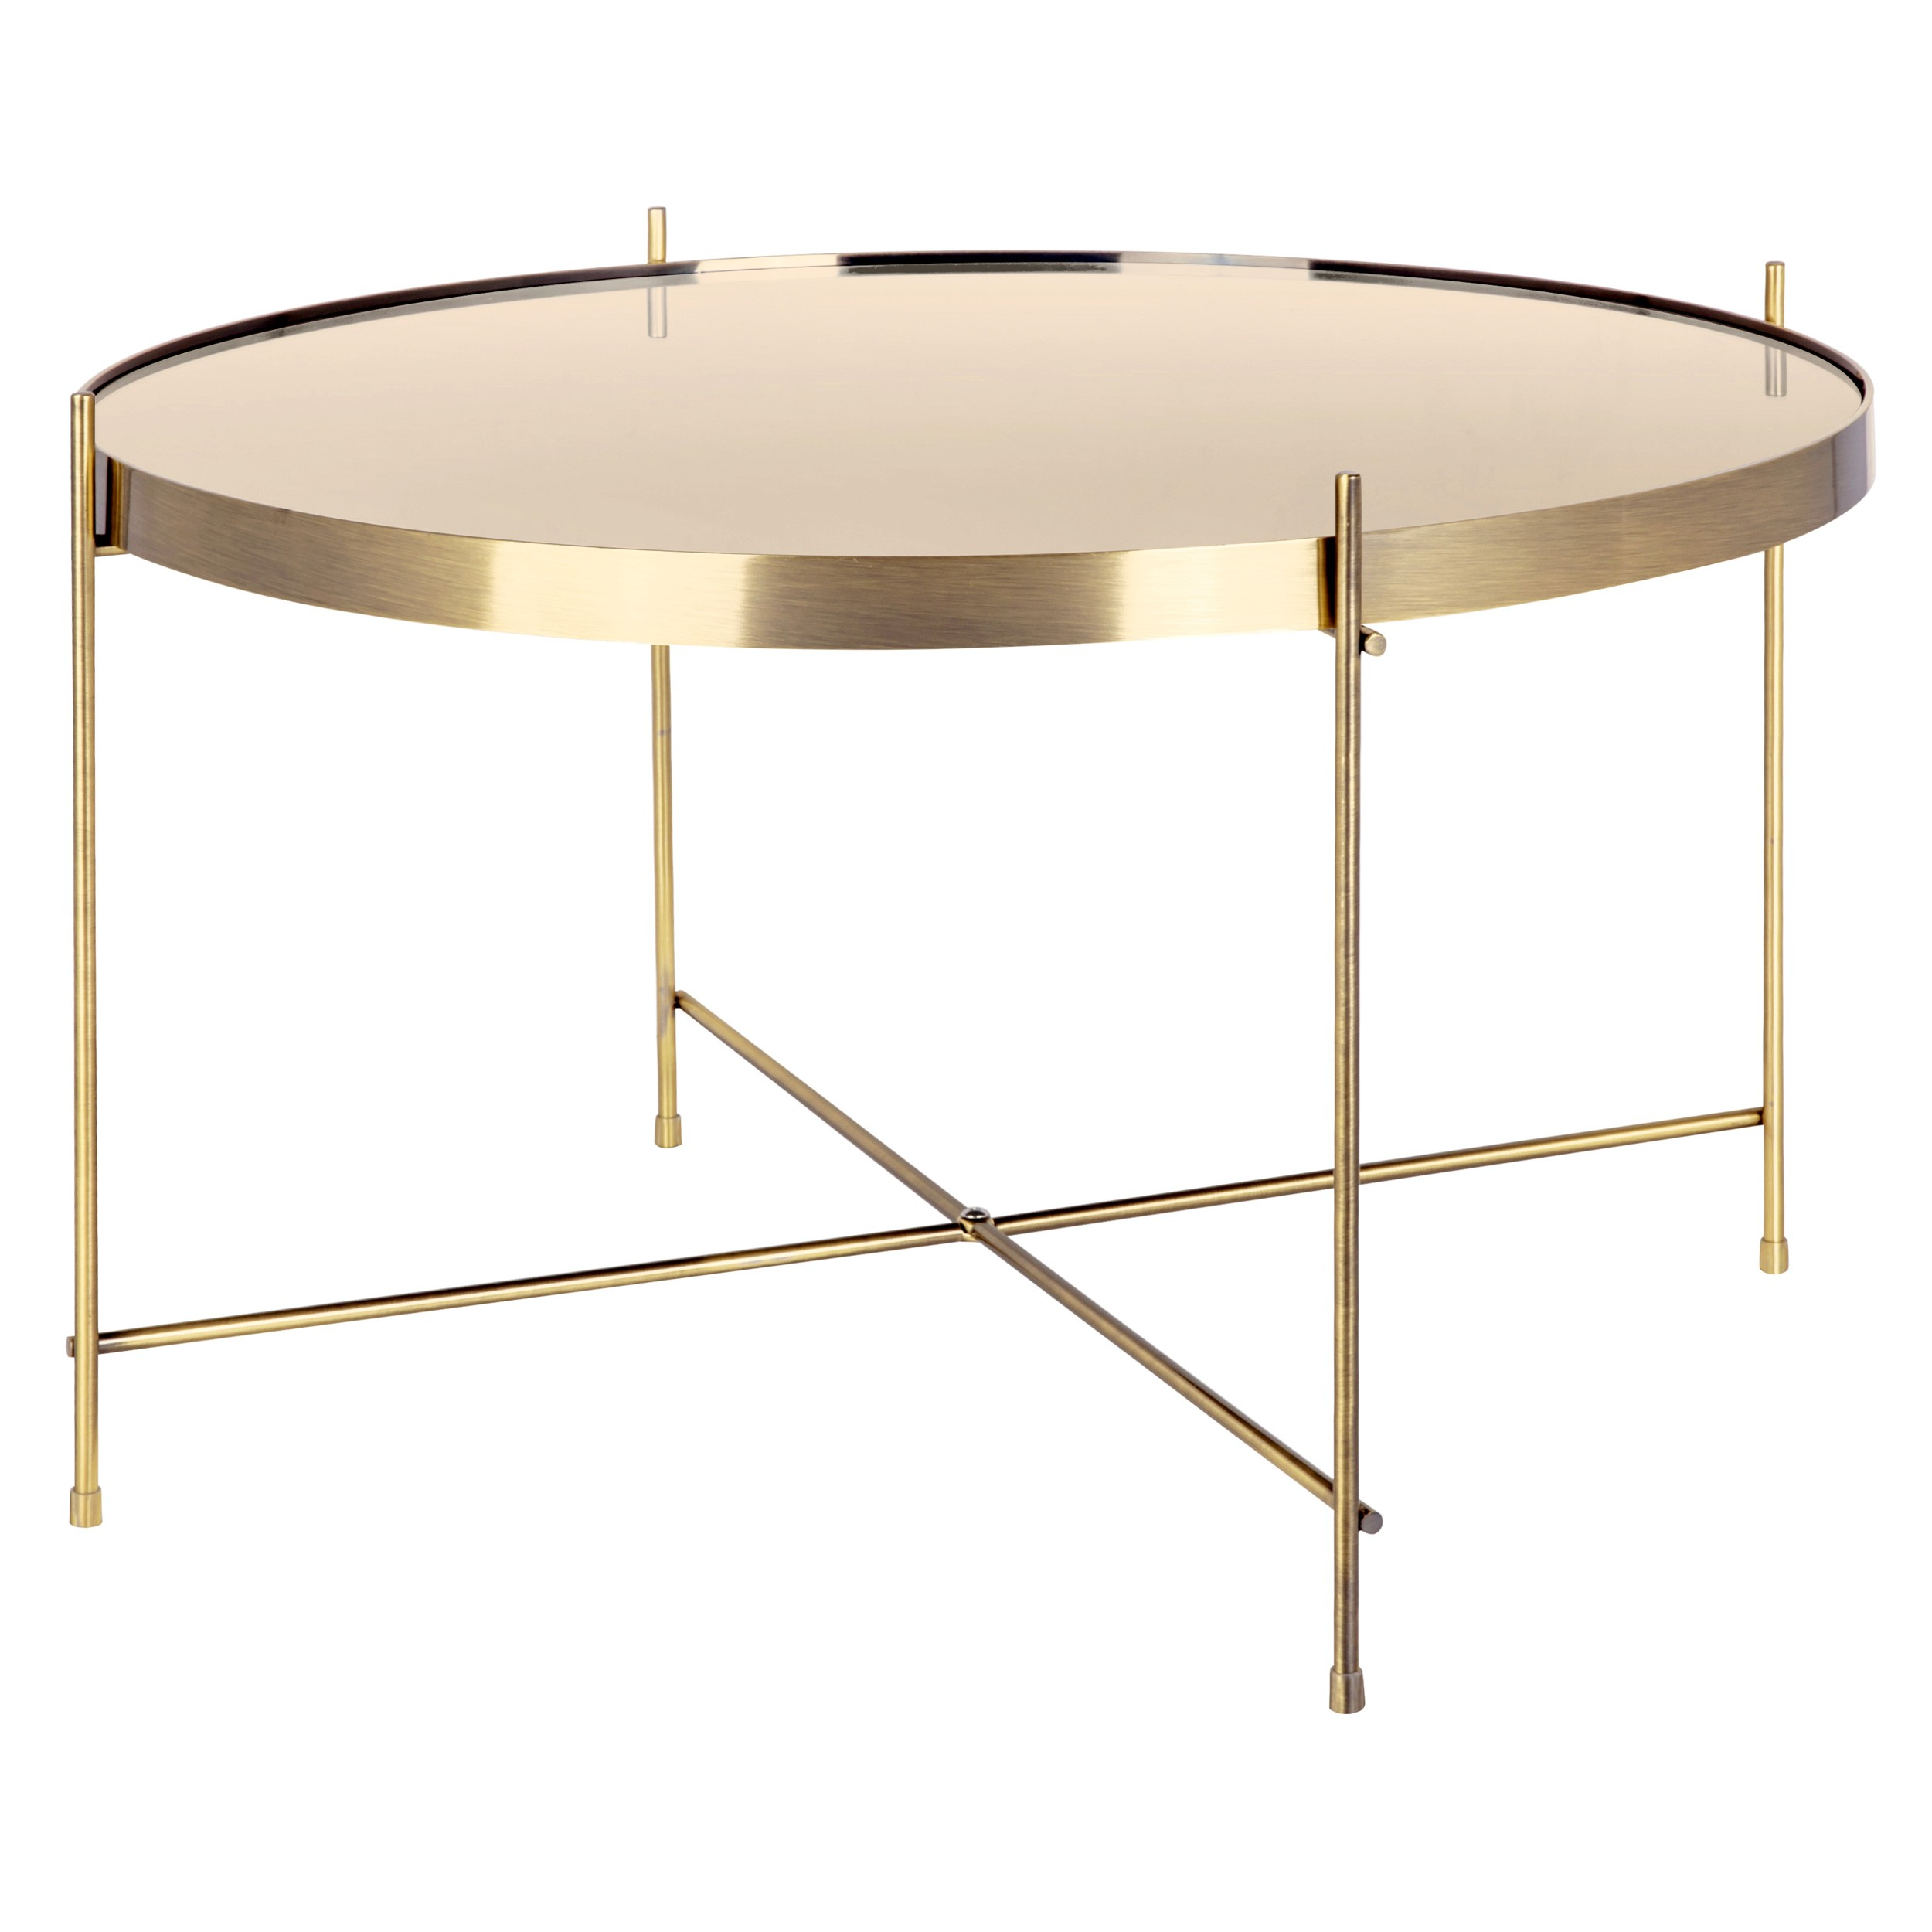 table basse ronde ovale cheap table basse ronde verre tremp sybil ampm with table basse ronde. Black Bedroom Furniture Sets. Home Design Ideas